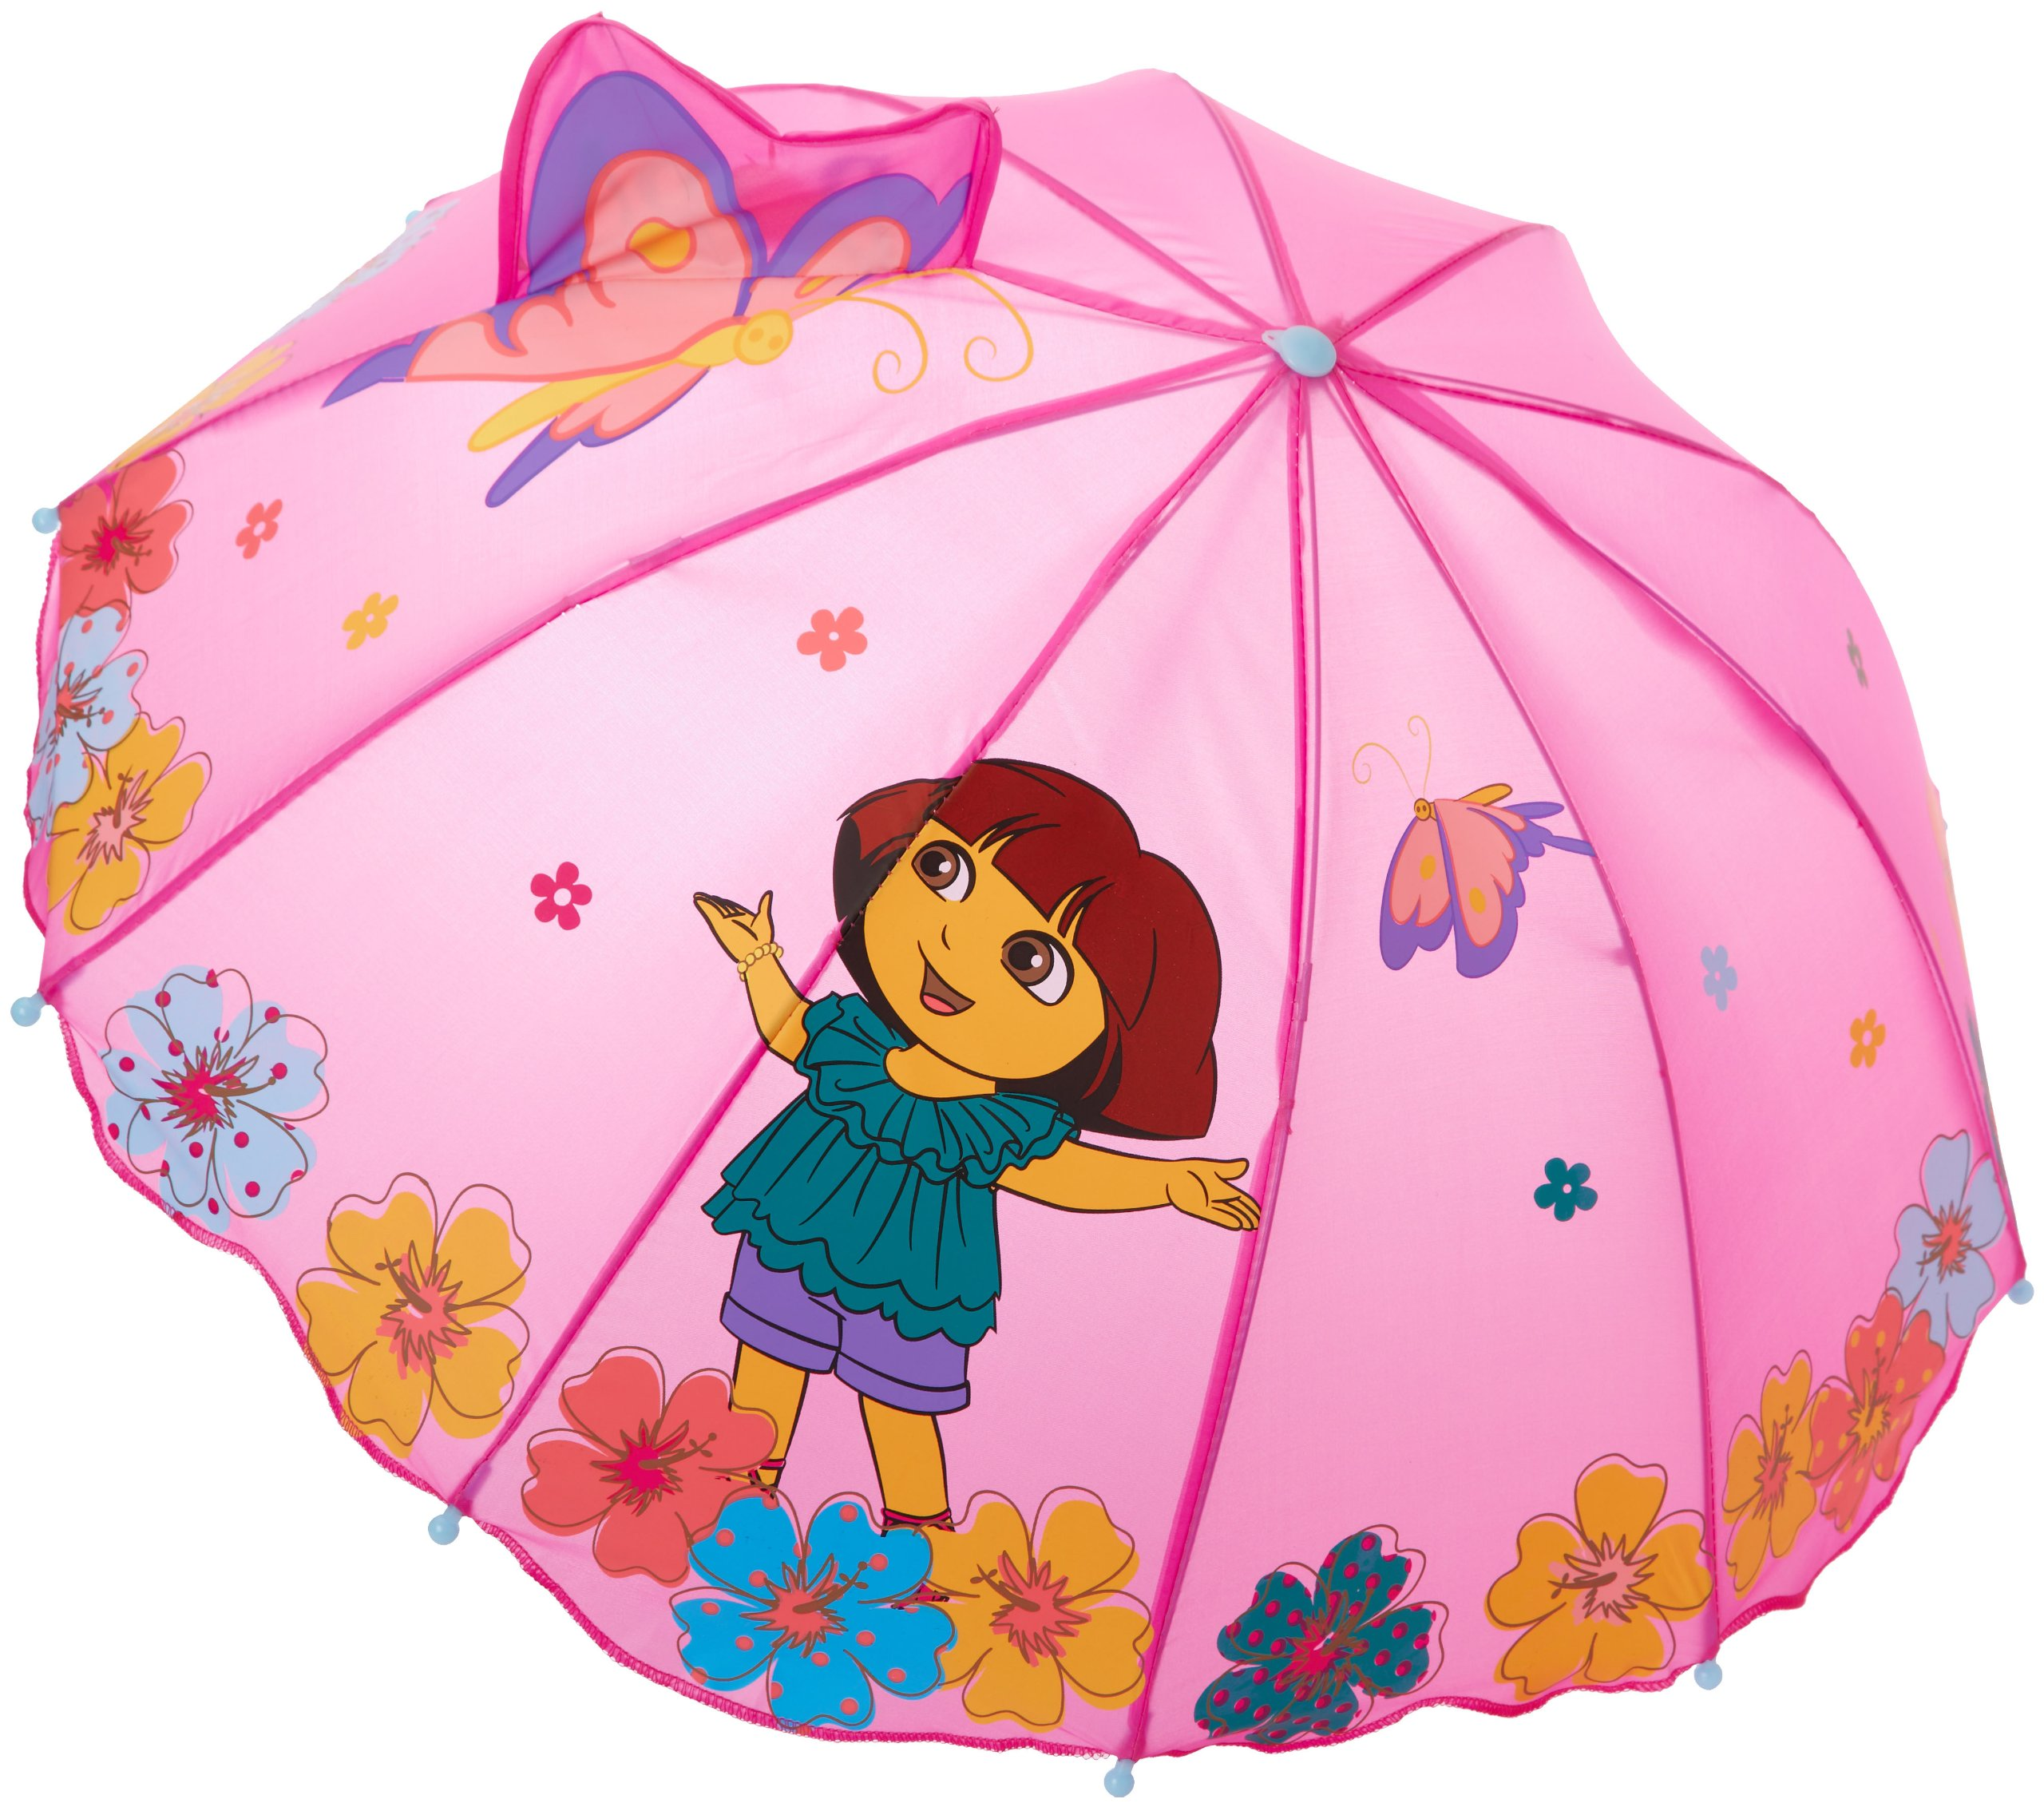 Kidorable Purple Dora the Explorer Umbrella for Girls w/Fun Flower Handle, Pop-Up Butterfly, 1 Size by Nickelodeon (Image #1)